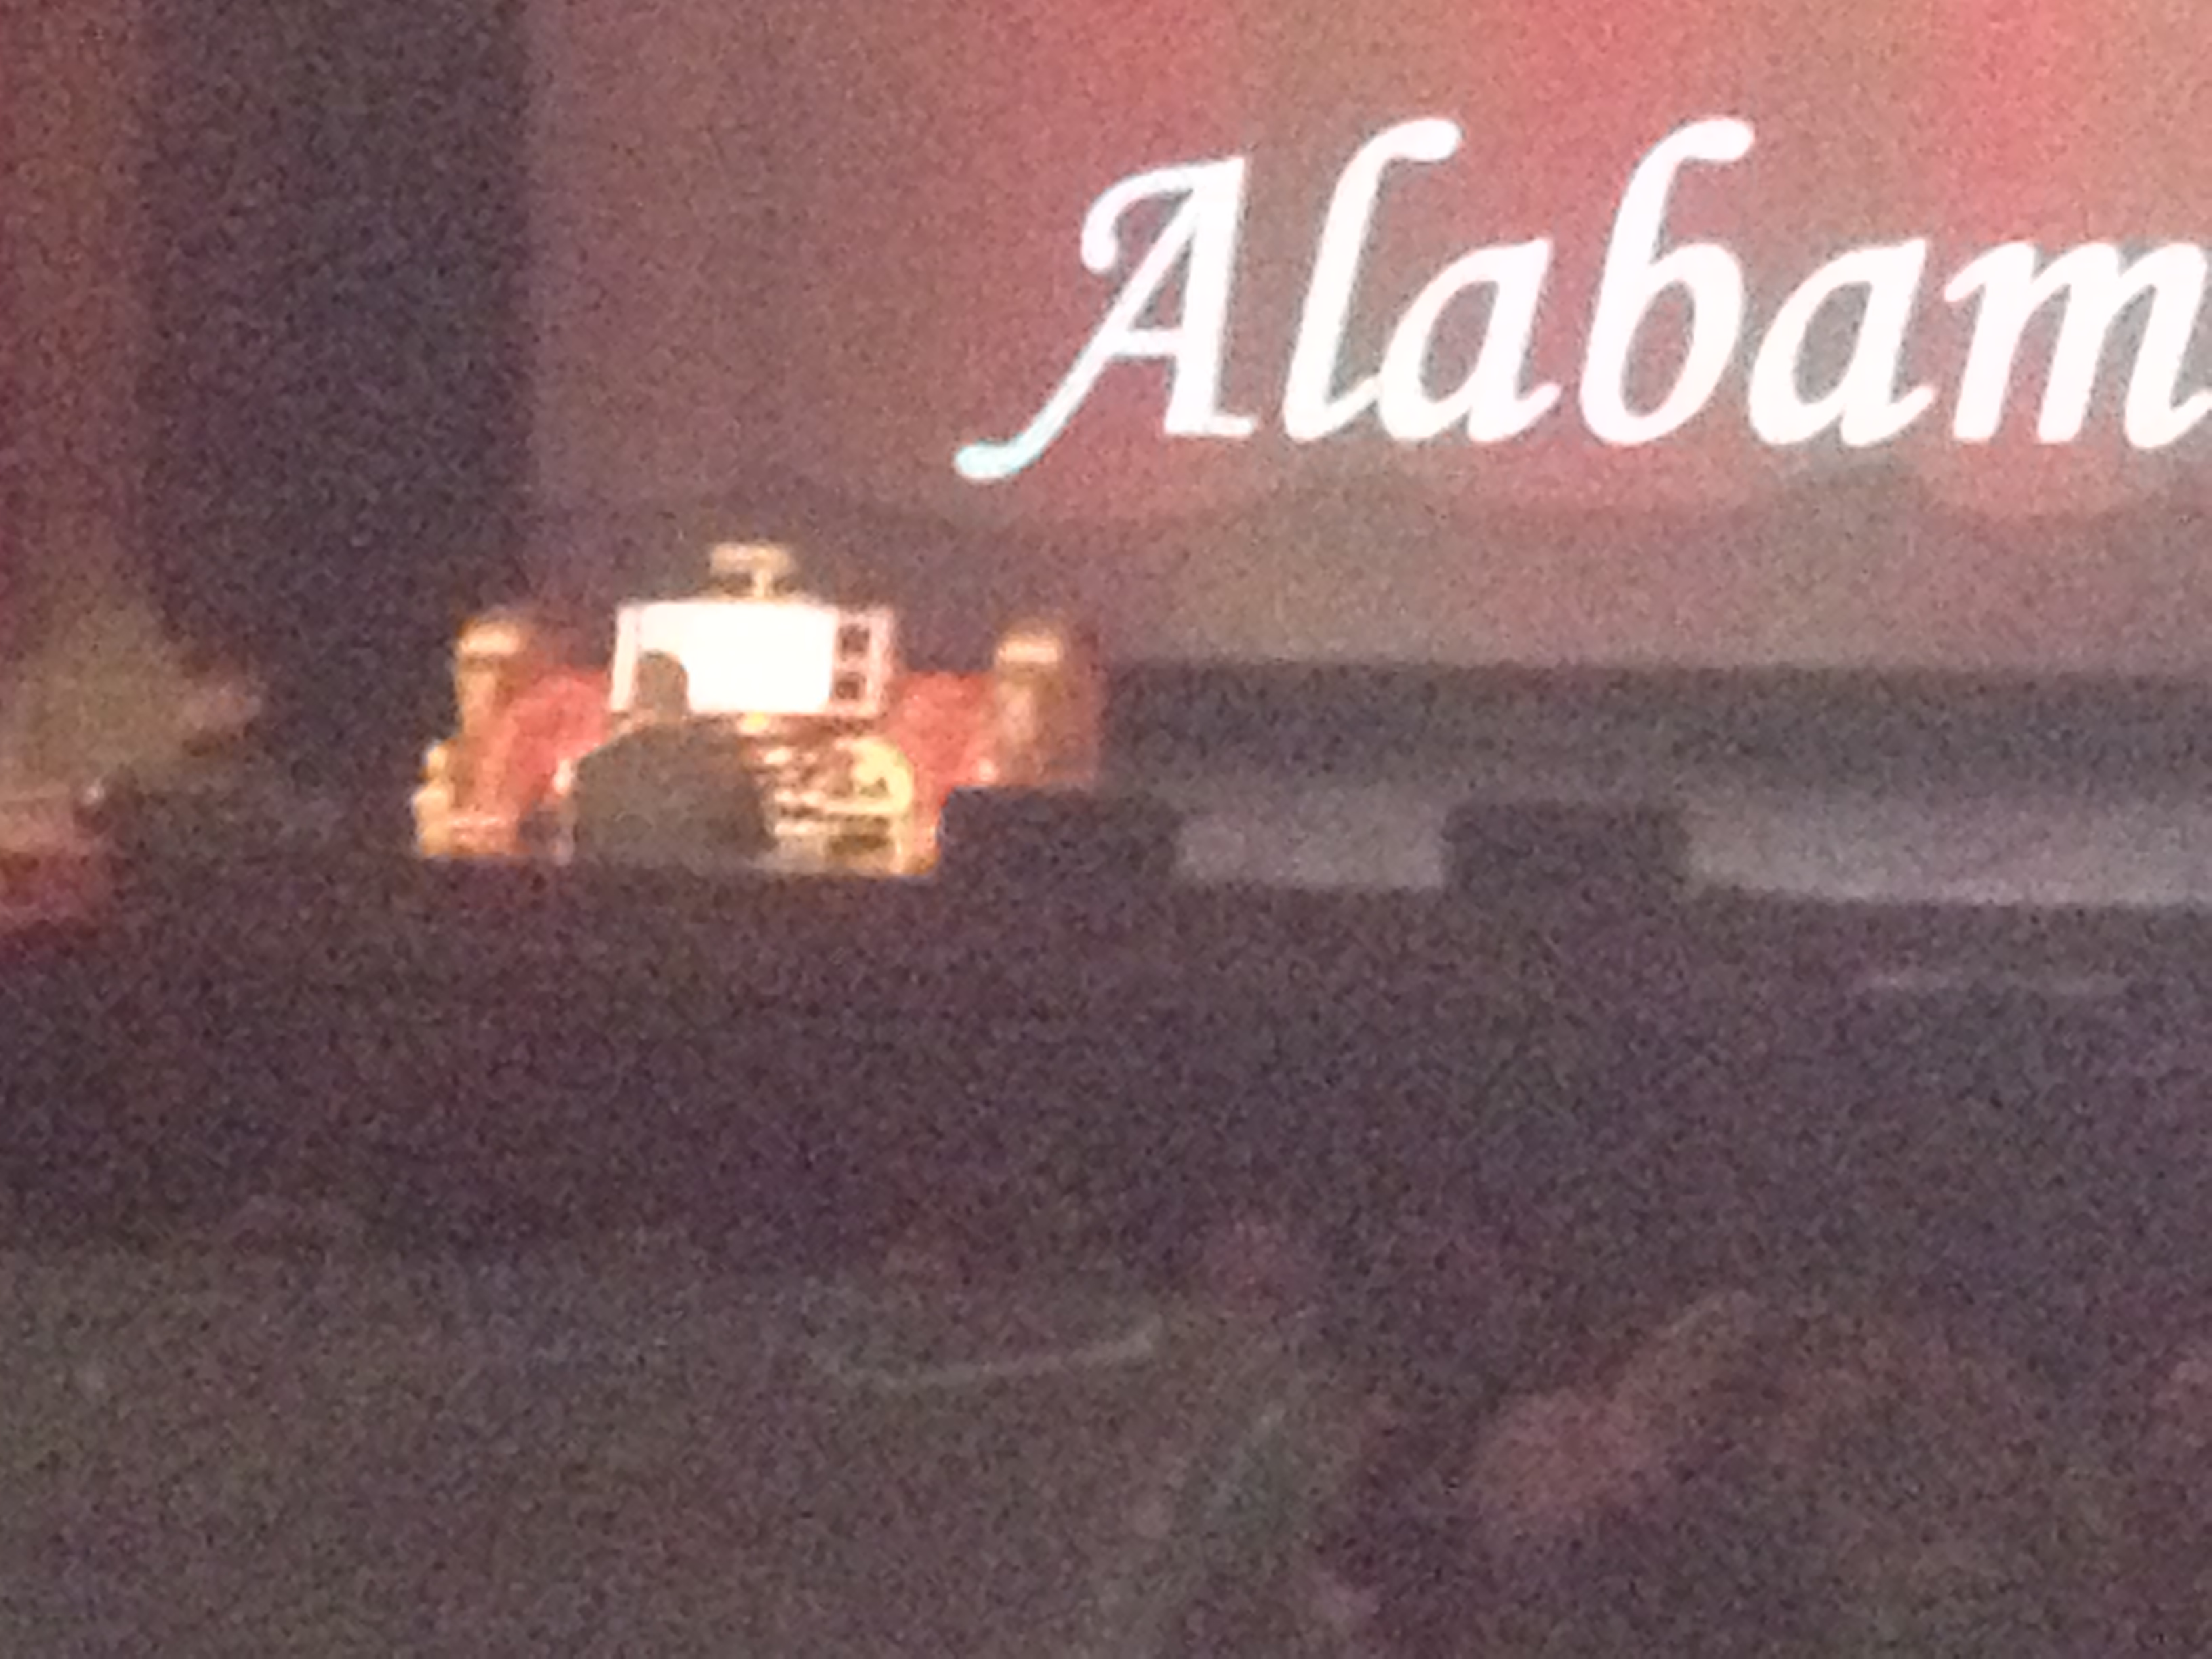 Image of the Alabama Theatre Wurlitzer Organ